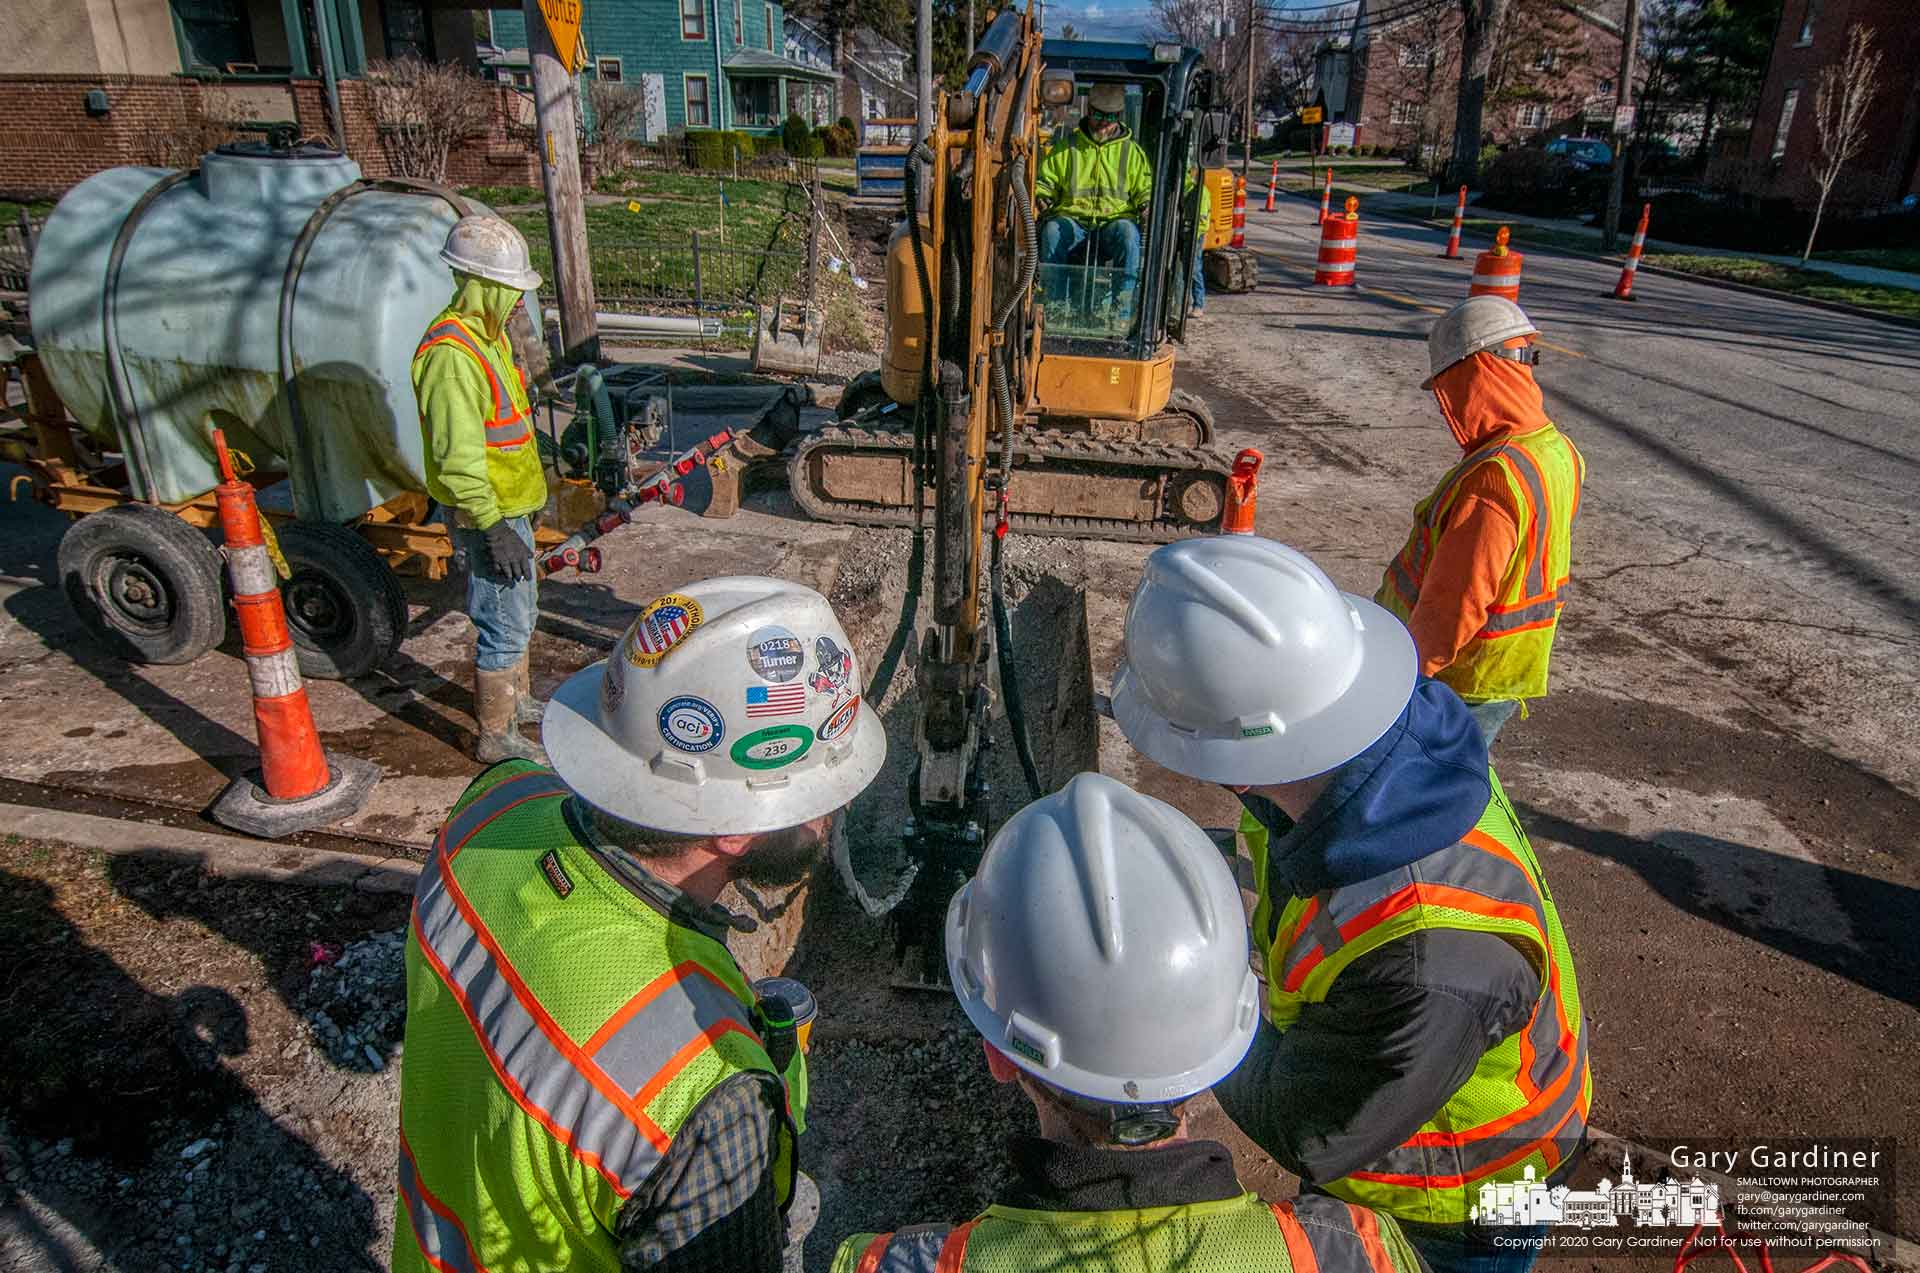 A trio of inspectors prepares to measure the compaction of materials placed over new waterlines laid on North State Street as part of the Uptown Improvement project. My Final Photo for March 13, 2020.